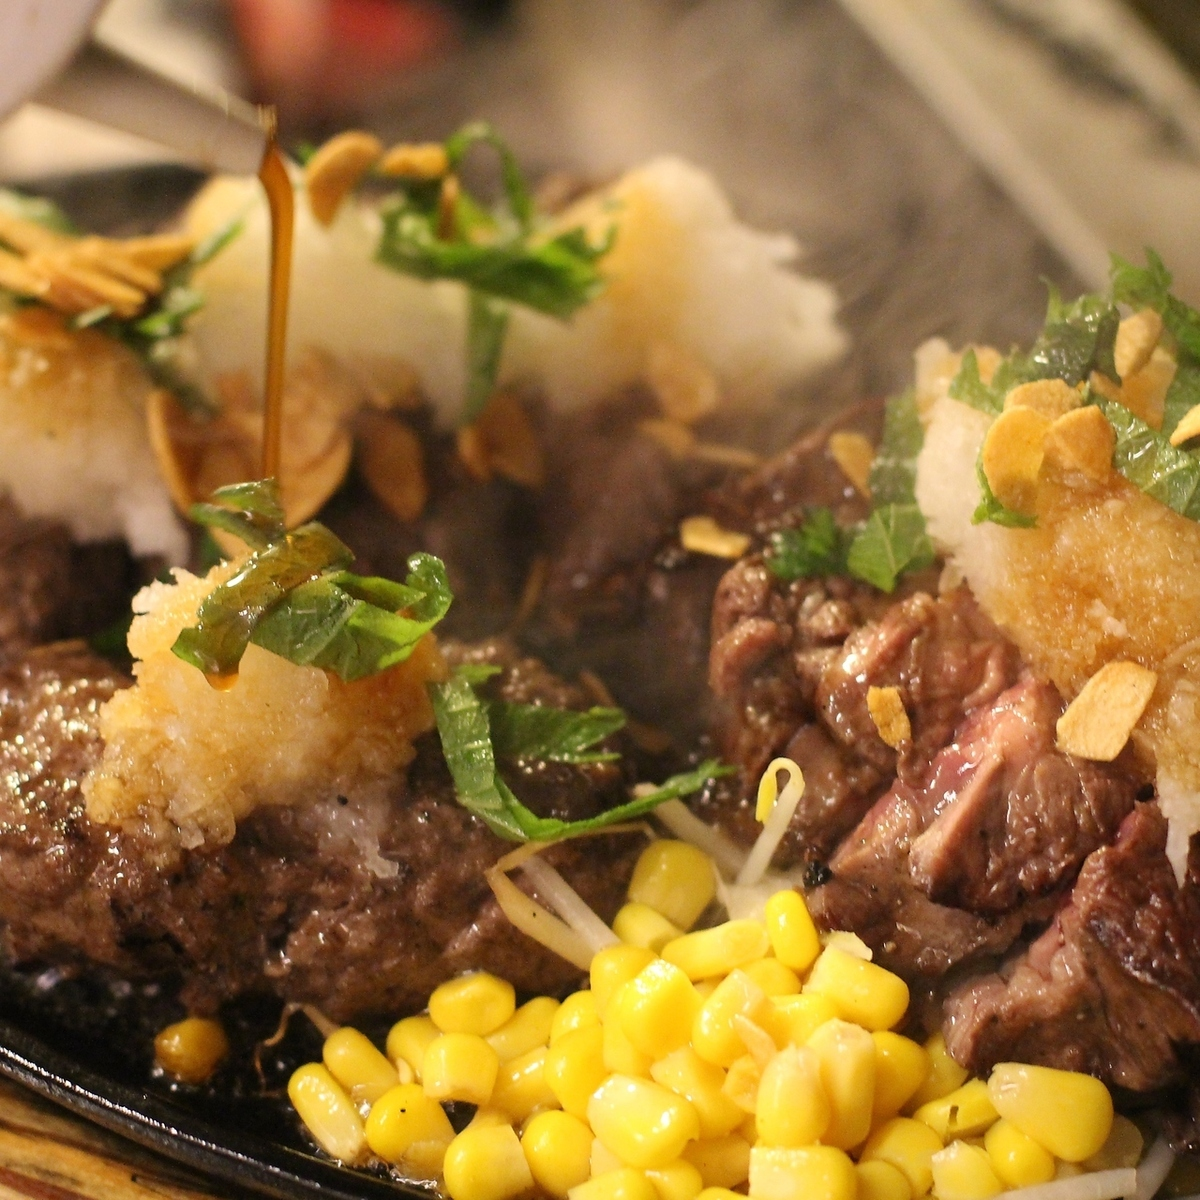 【Bake on charcoal fire!】 Sticky steak ◎